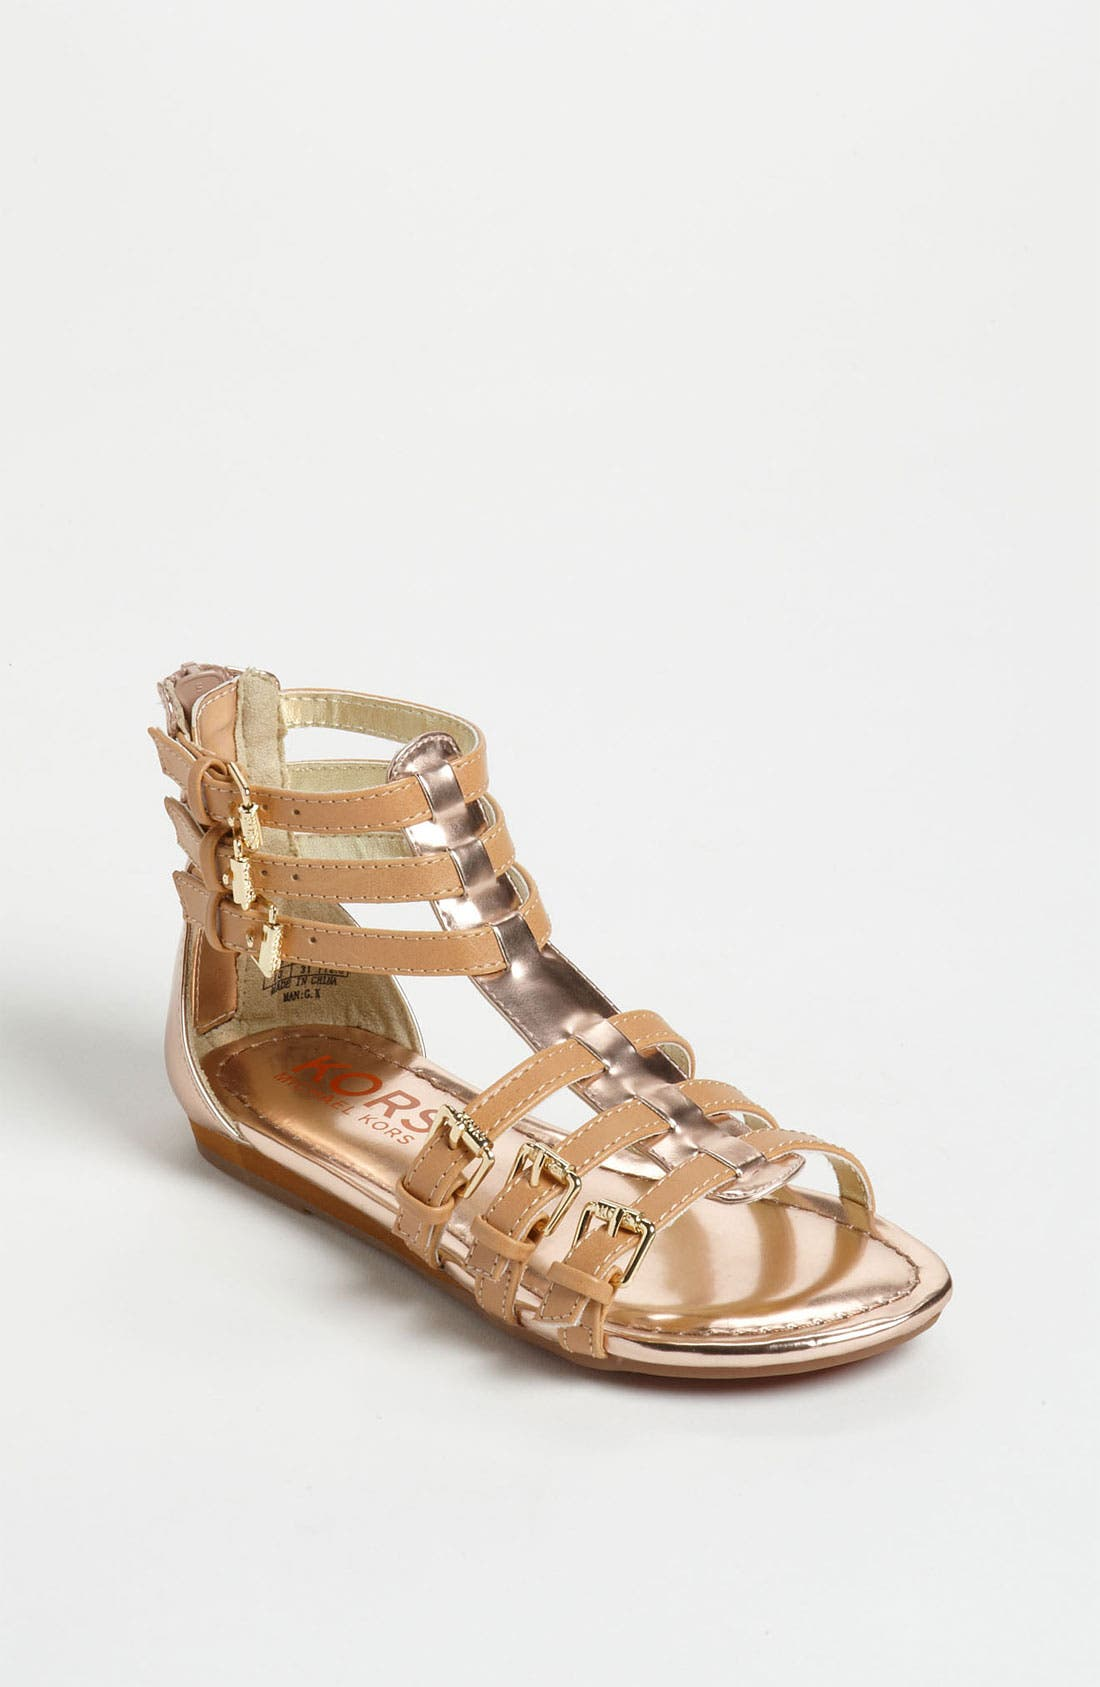 Alternate Image 1 Selected - KORS Michael Kors 'Grenadine' Gladiator Sandal (Toddler, Little Kid & Big Kid)